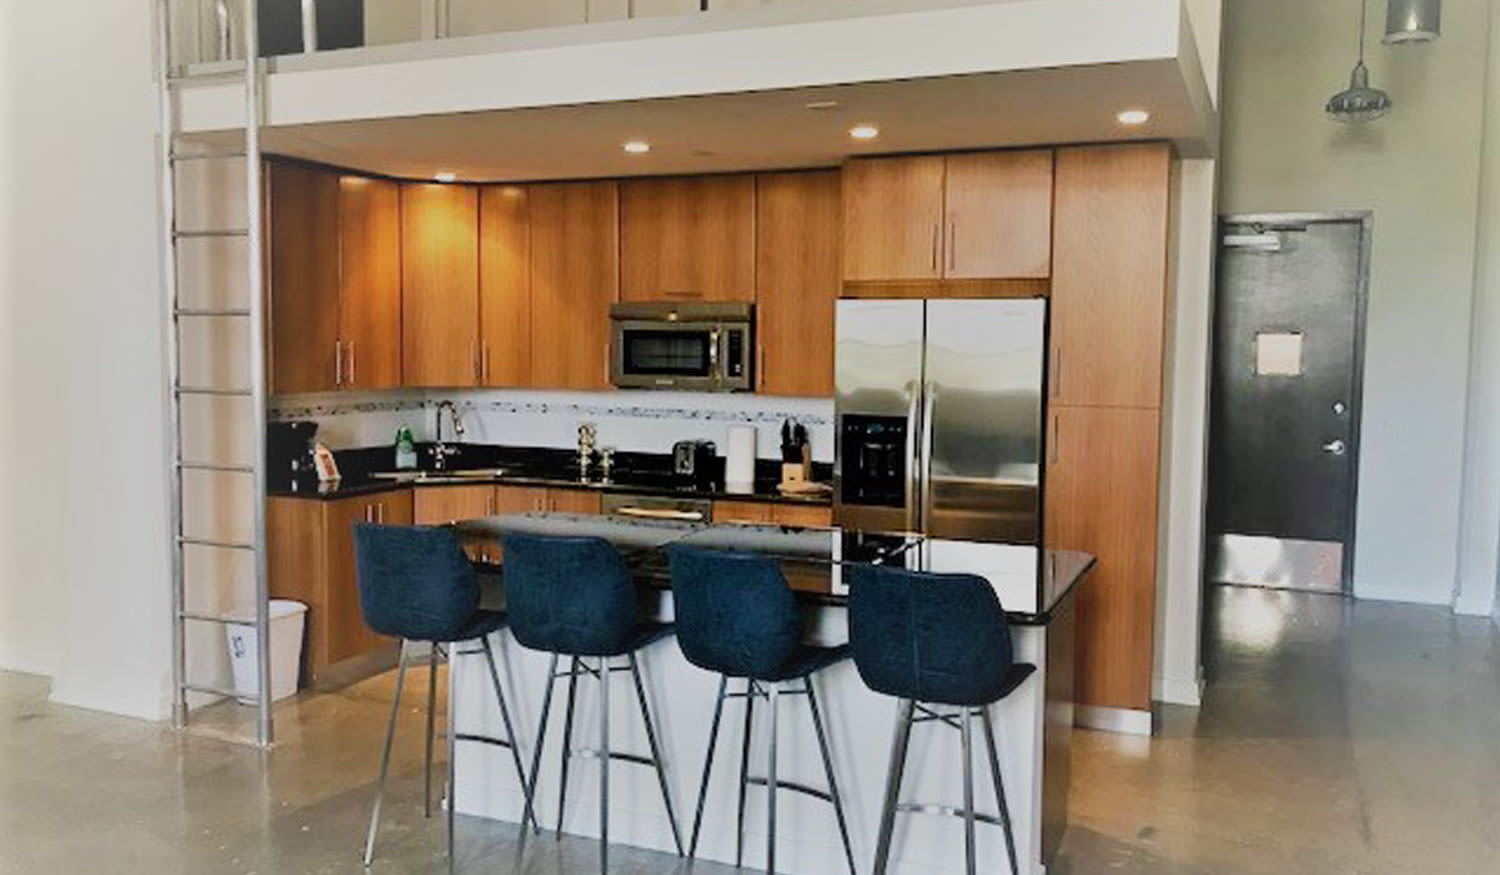 Breakfast bar next to kitchen at The Exchange Lofts in Fort Lauderdale, Florida